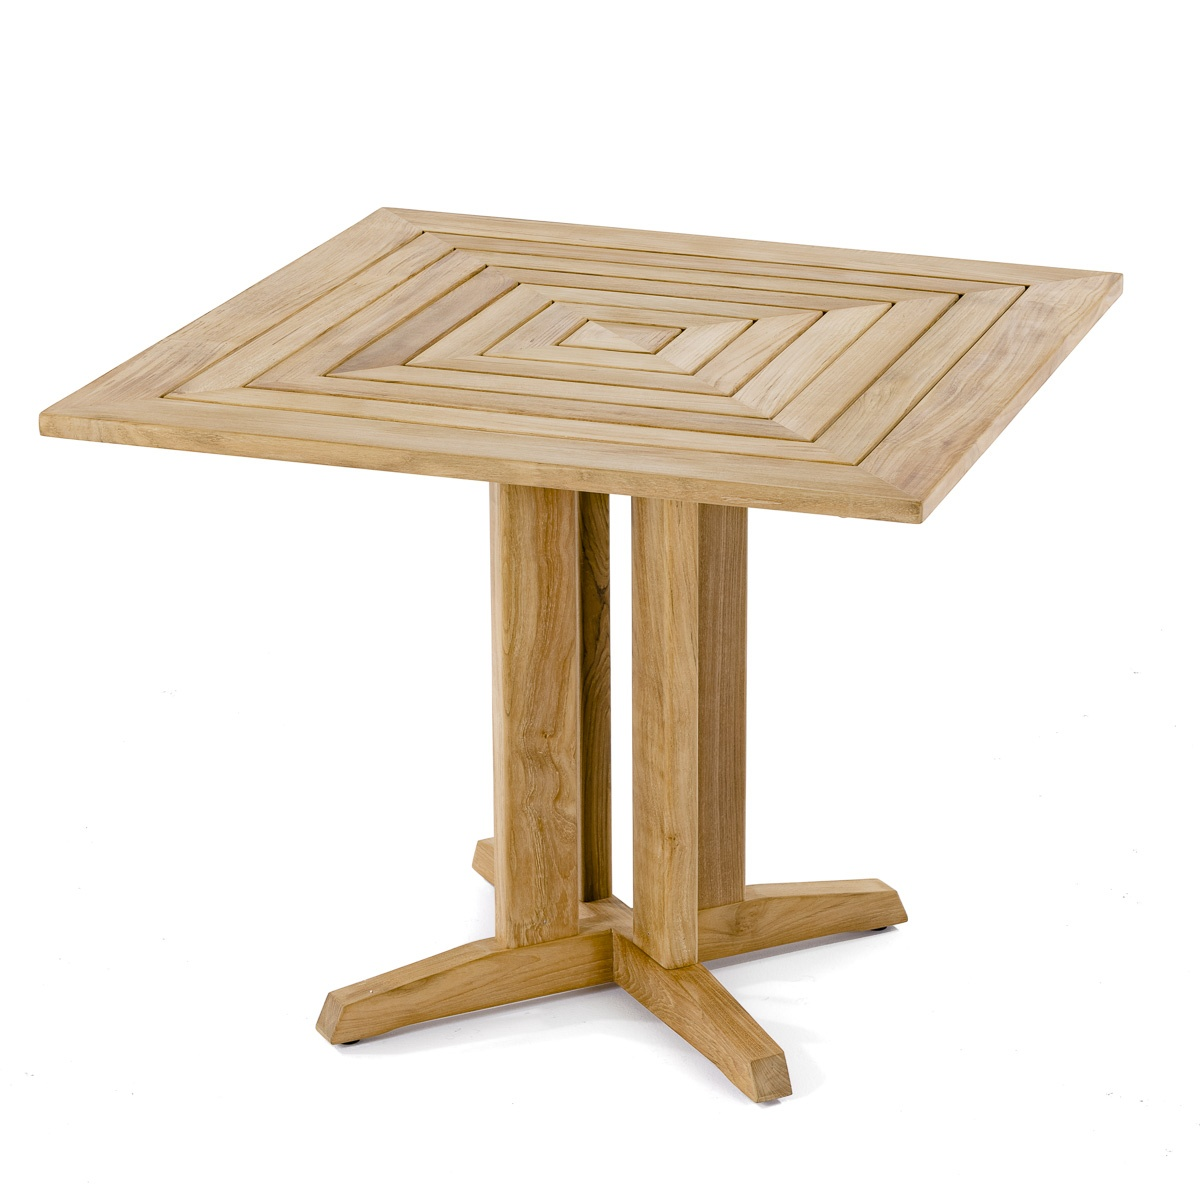 3ft square teak outdoor dining table westminster teak outdoor